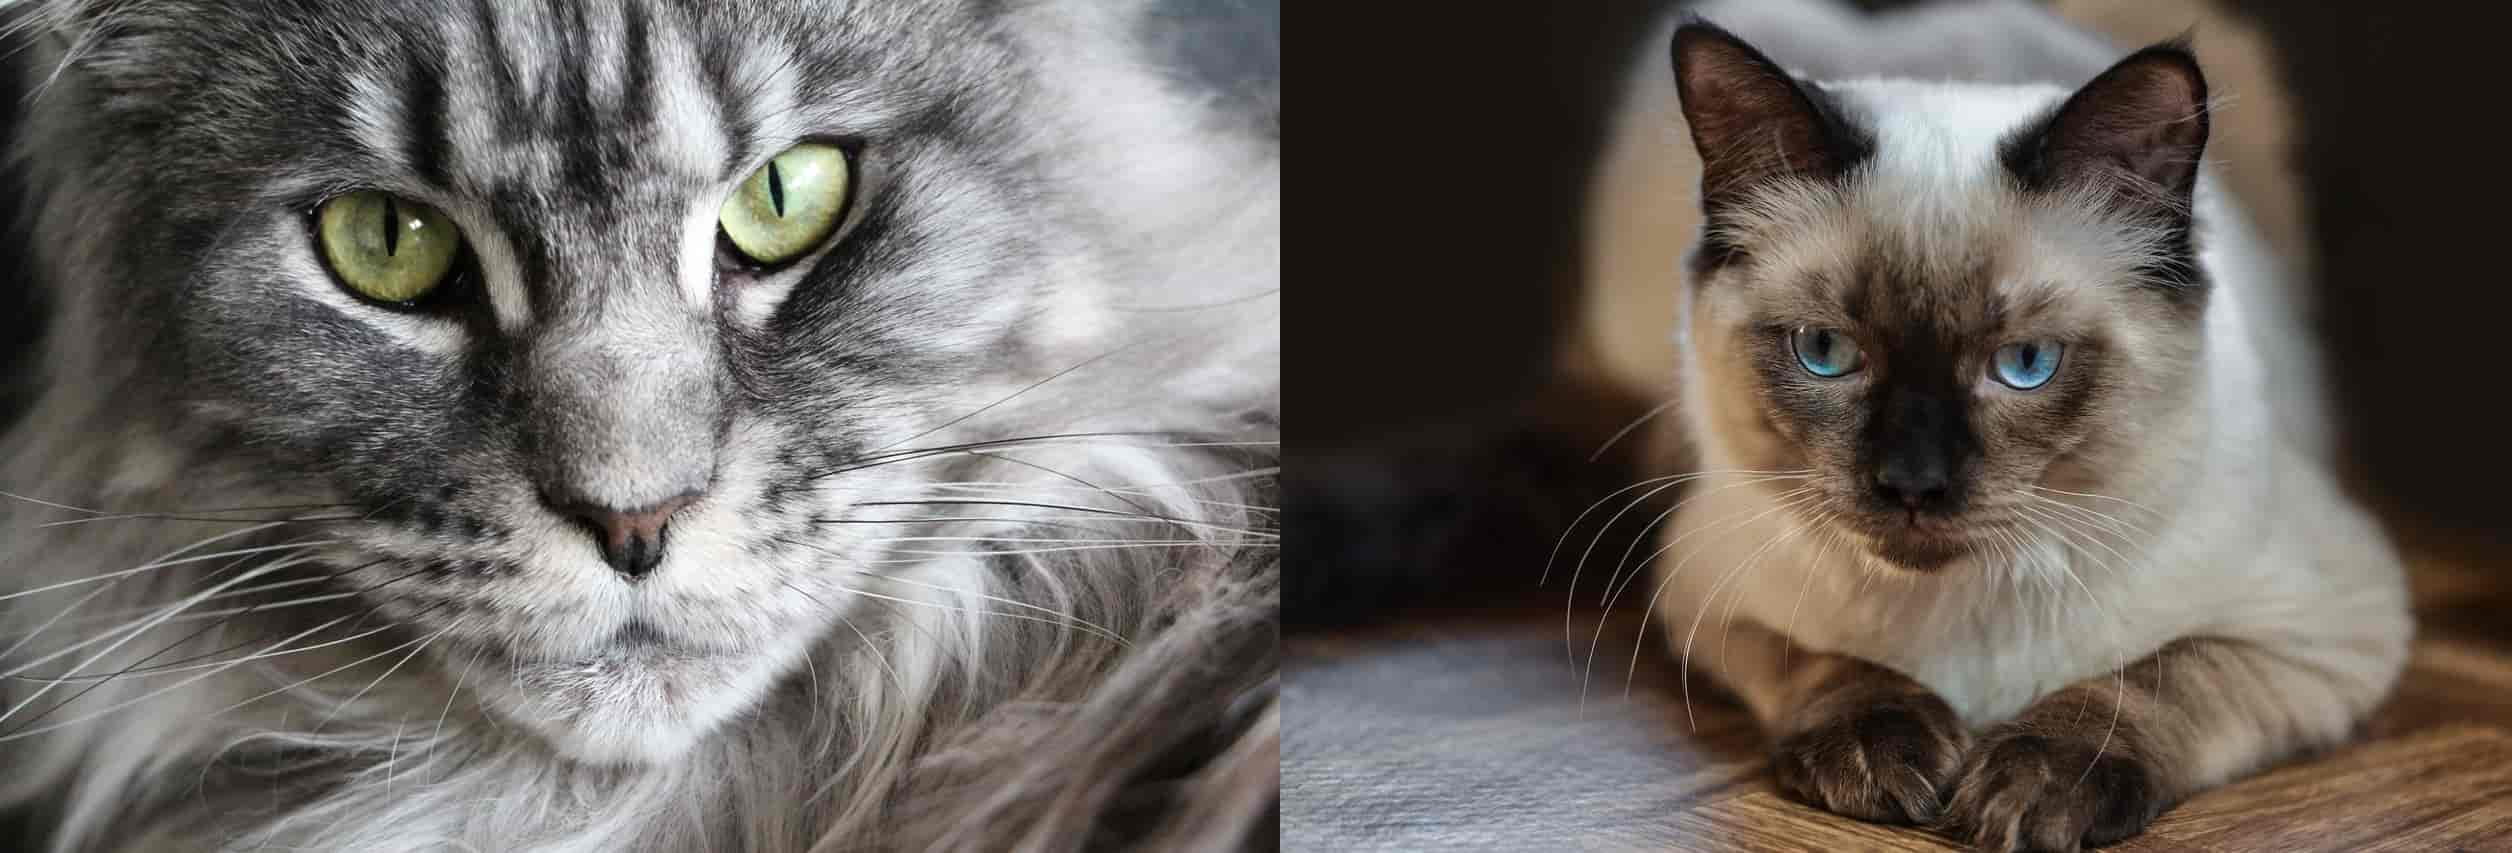 Maine Coon vs Ragdoll Differences